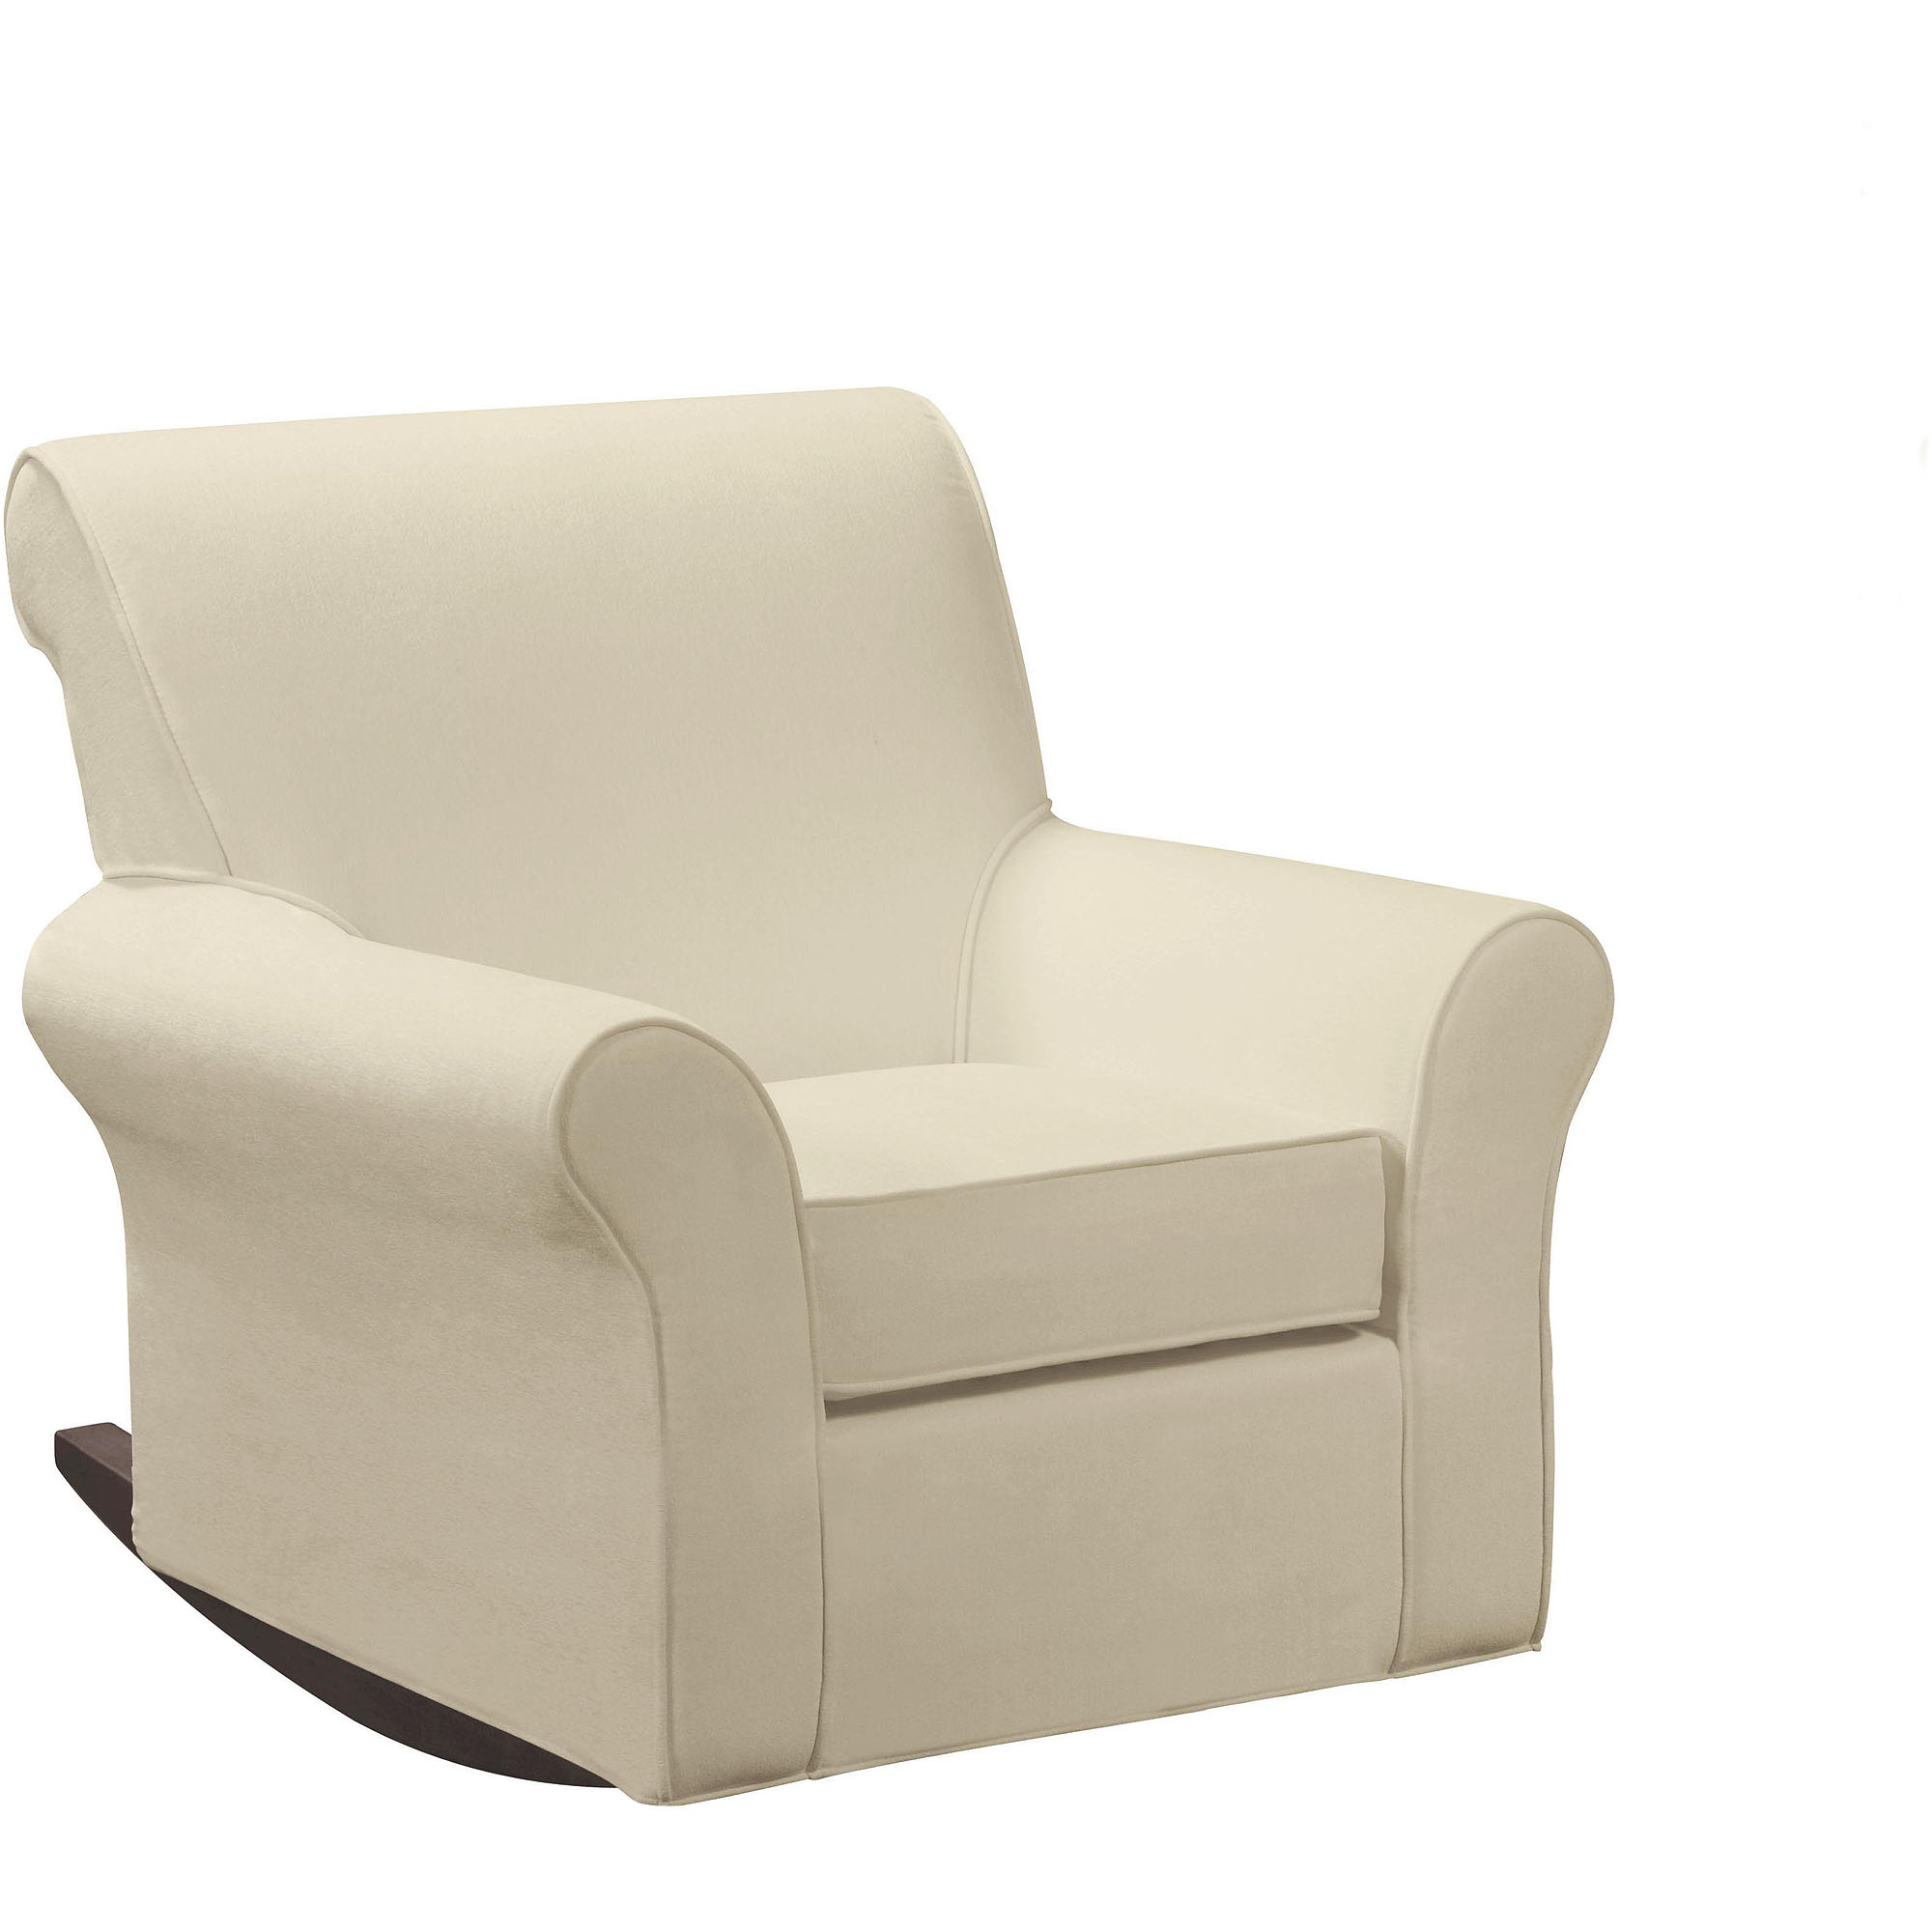 Captivating Dorel   Rocking Chair (Slipcover Sold Separately)   Walmart.com